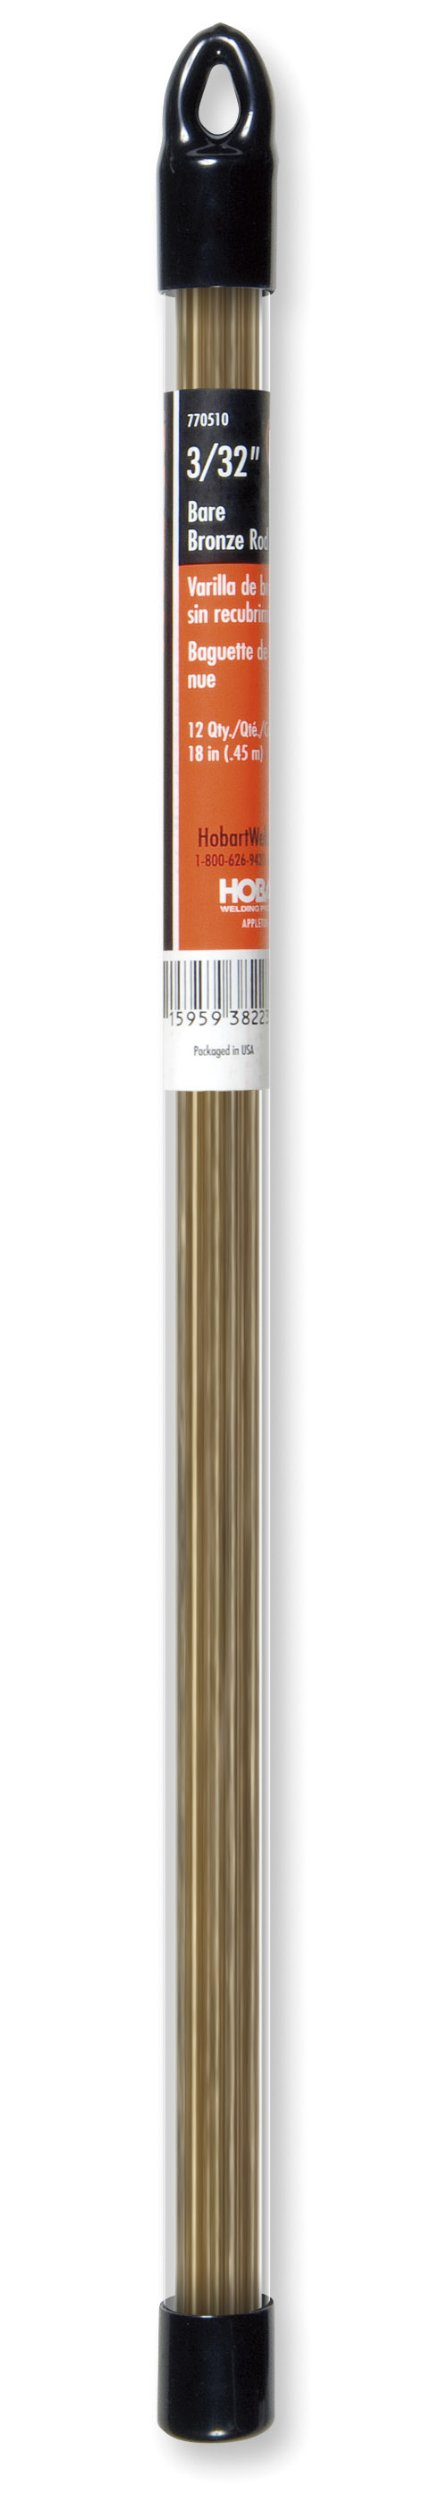 Hobart 770510 Low-Fuming Bare Bronze Gas Welding Rods, 3/32-by-18-Inch